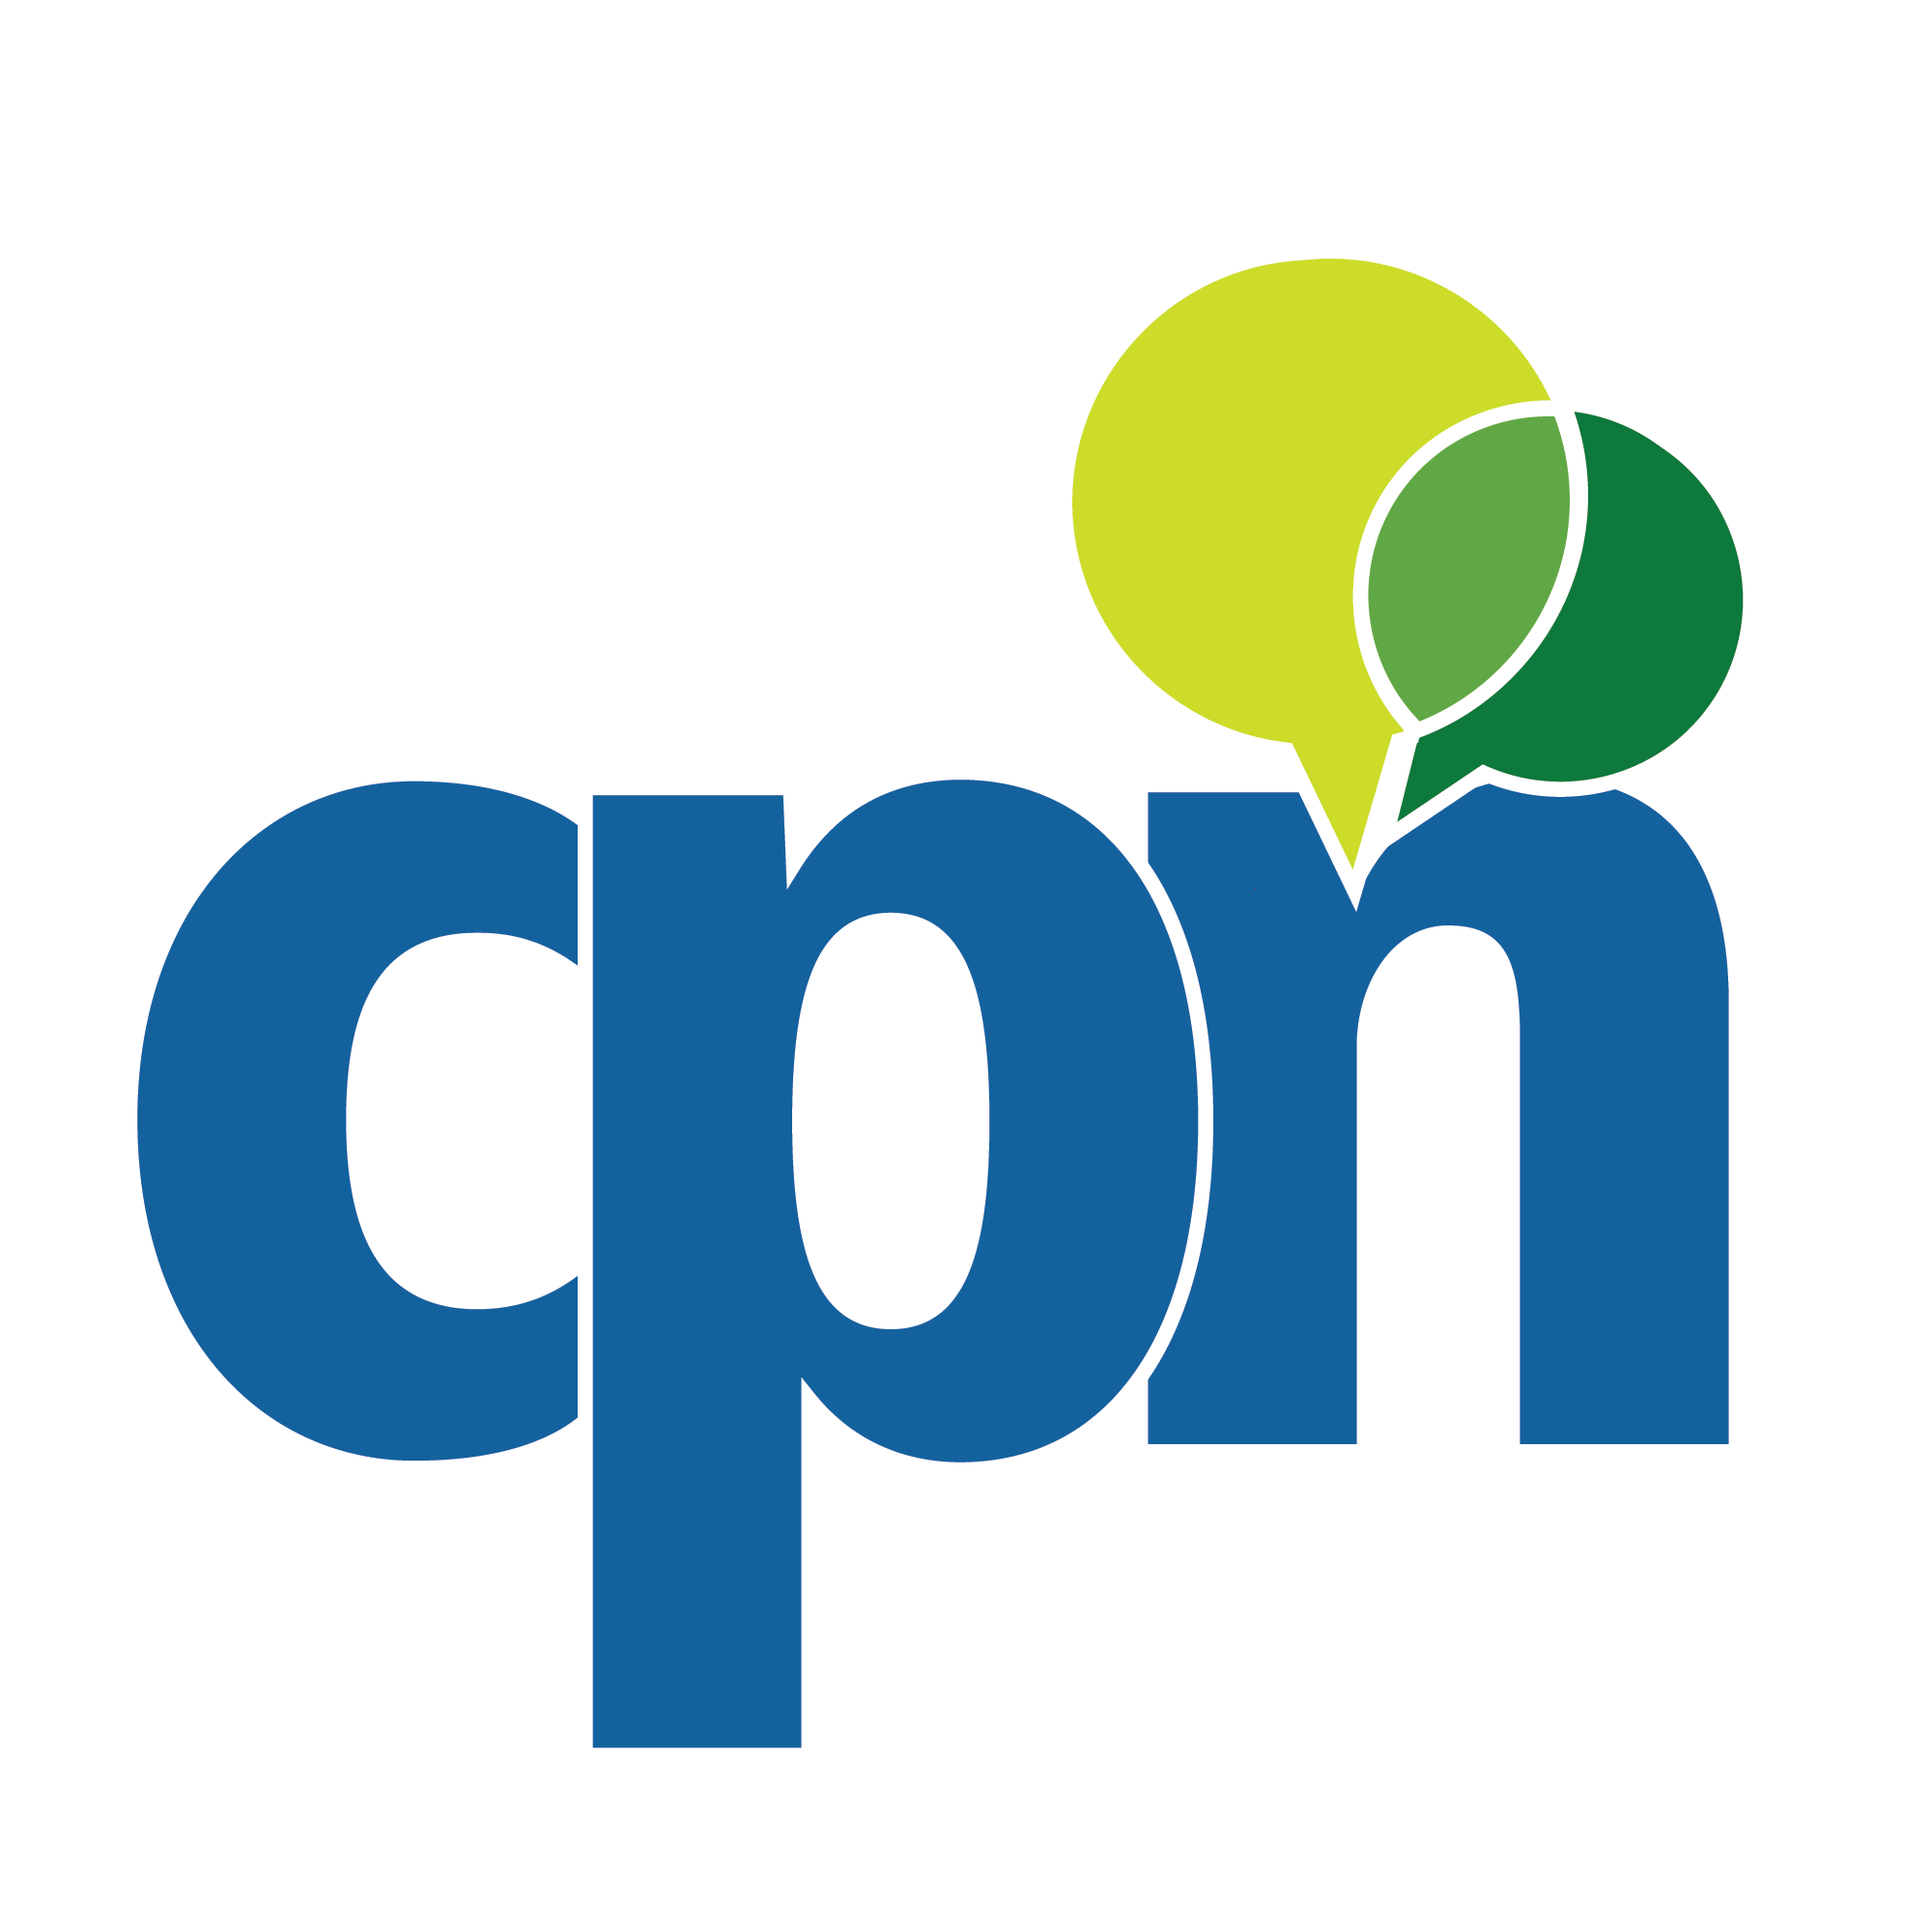 CPN_2A_LOGO.png